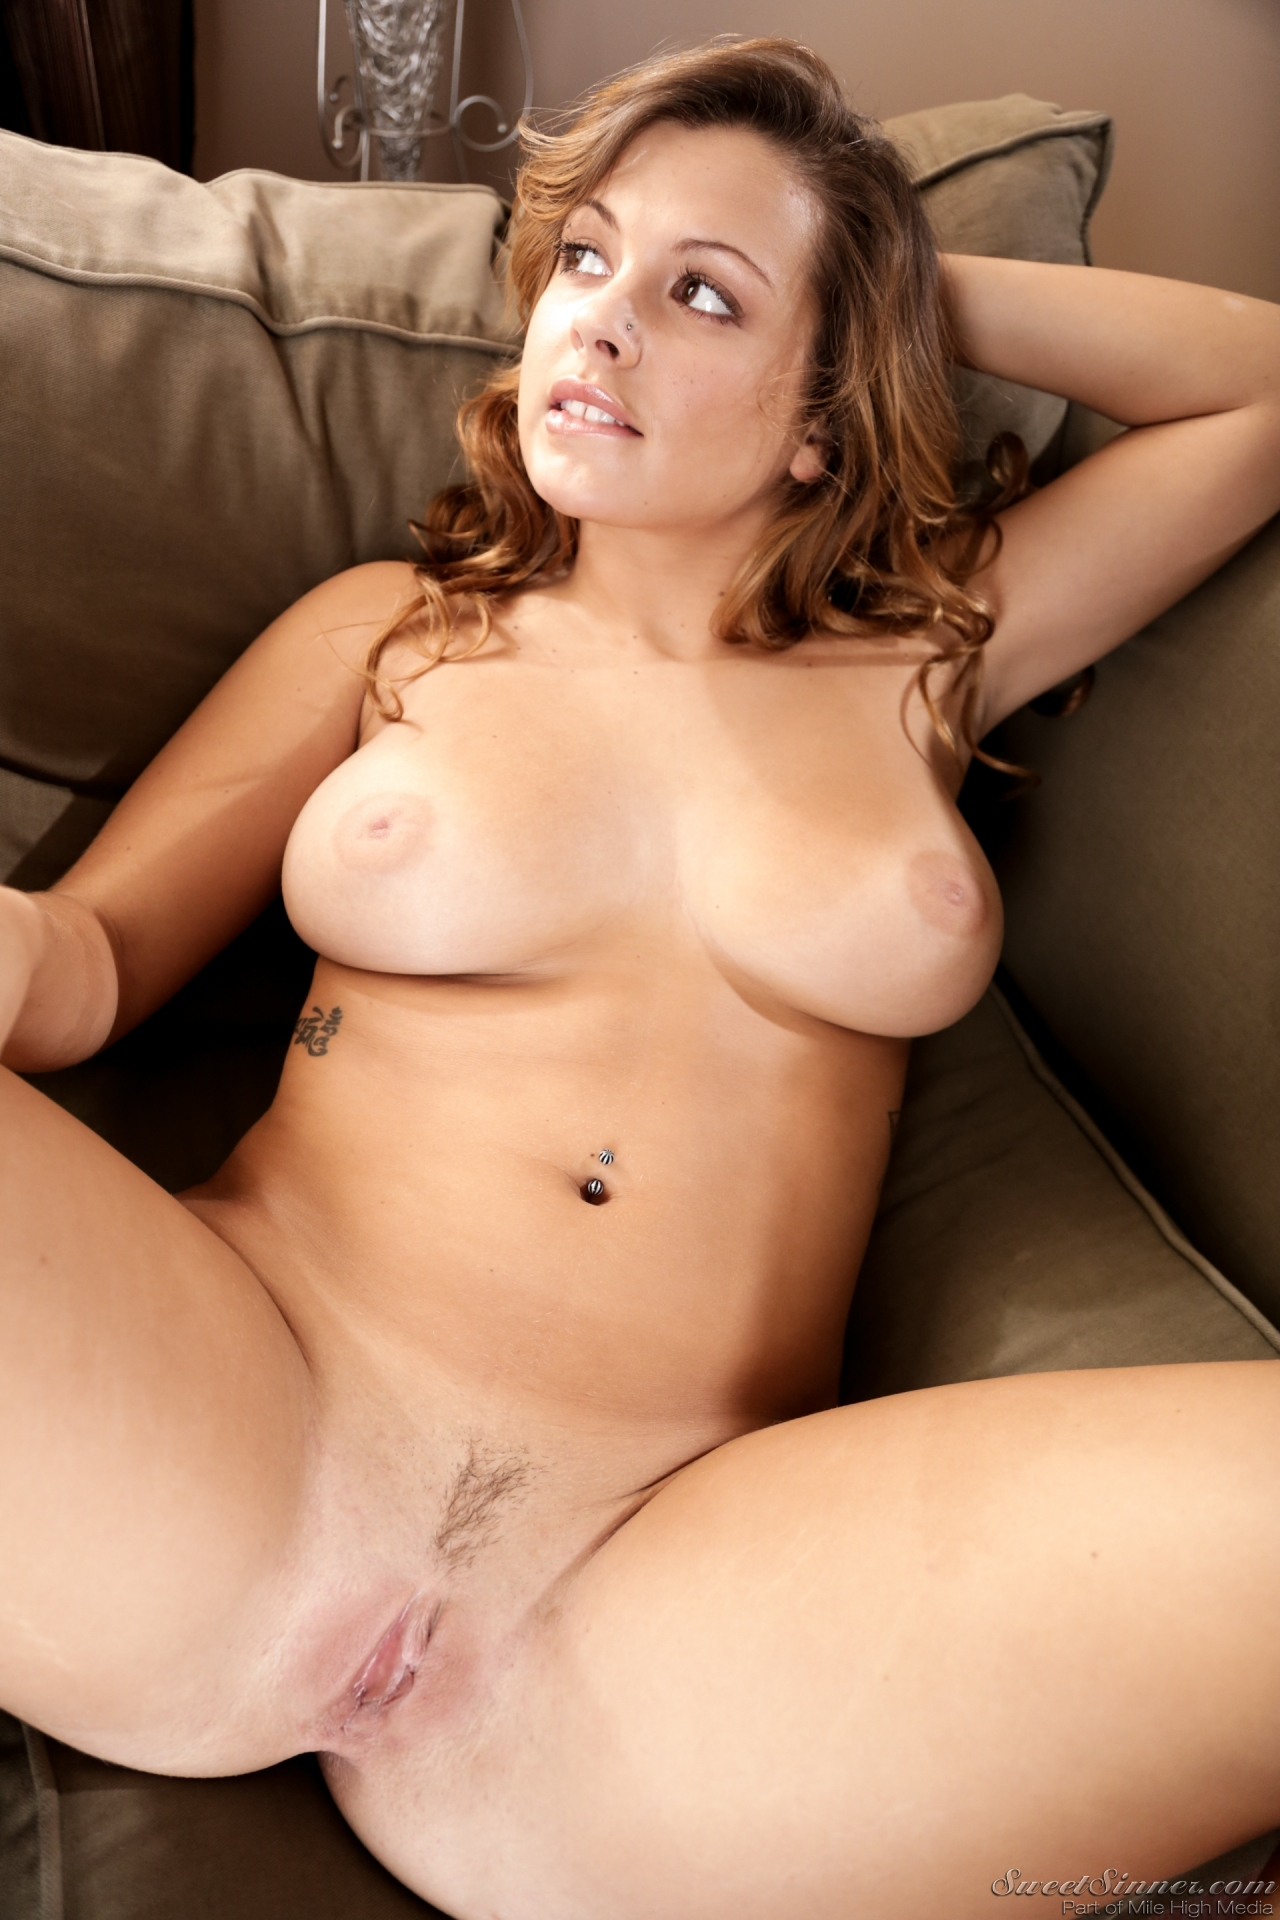 image Keisha grey naked shows off her boobs bush and butt